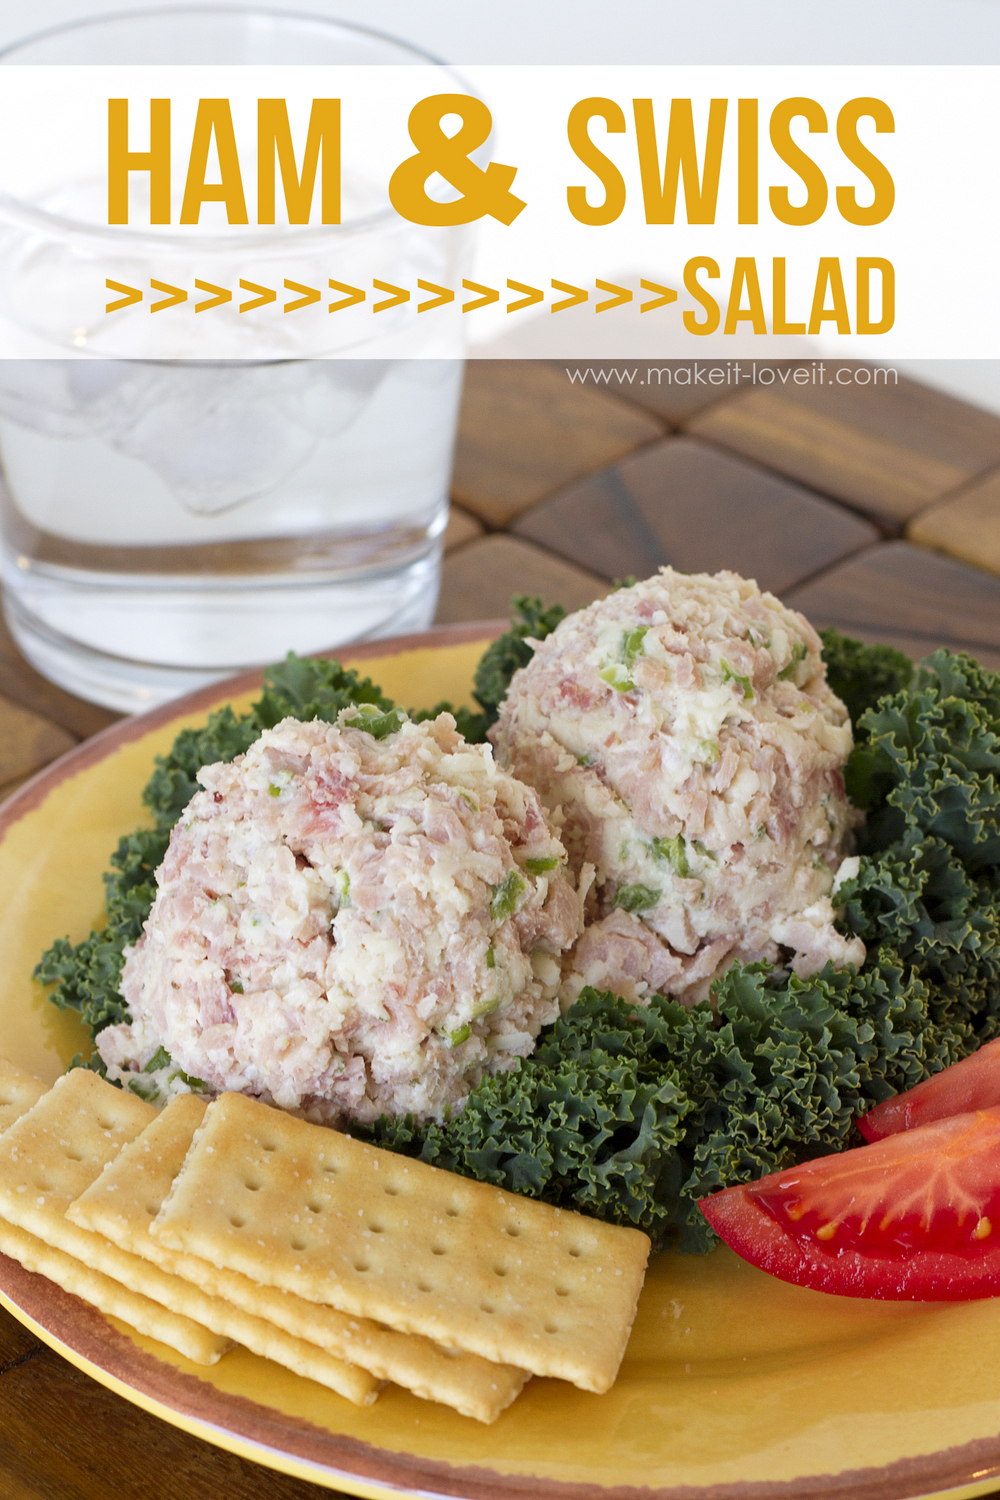 Ham and Swiss Salad…simple, versatile, and delicious!